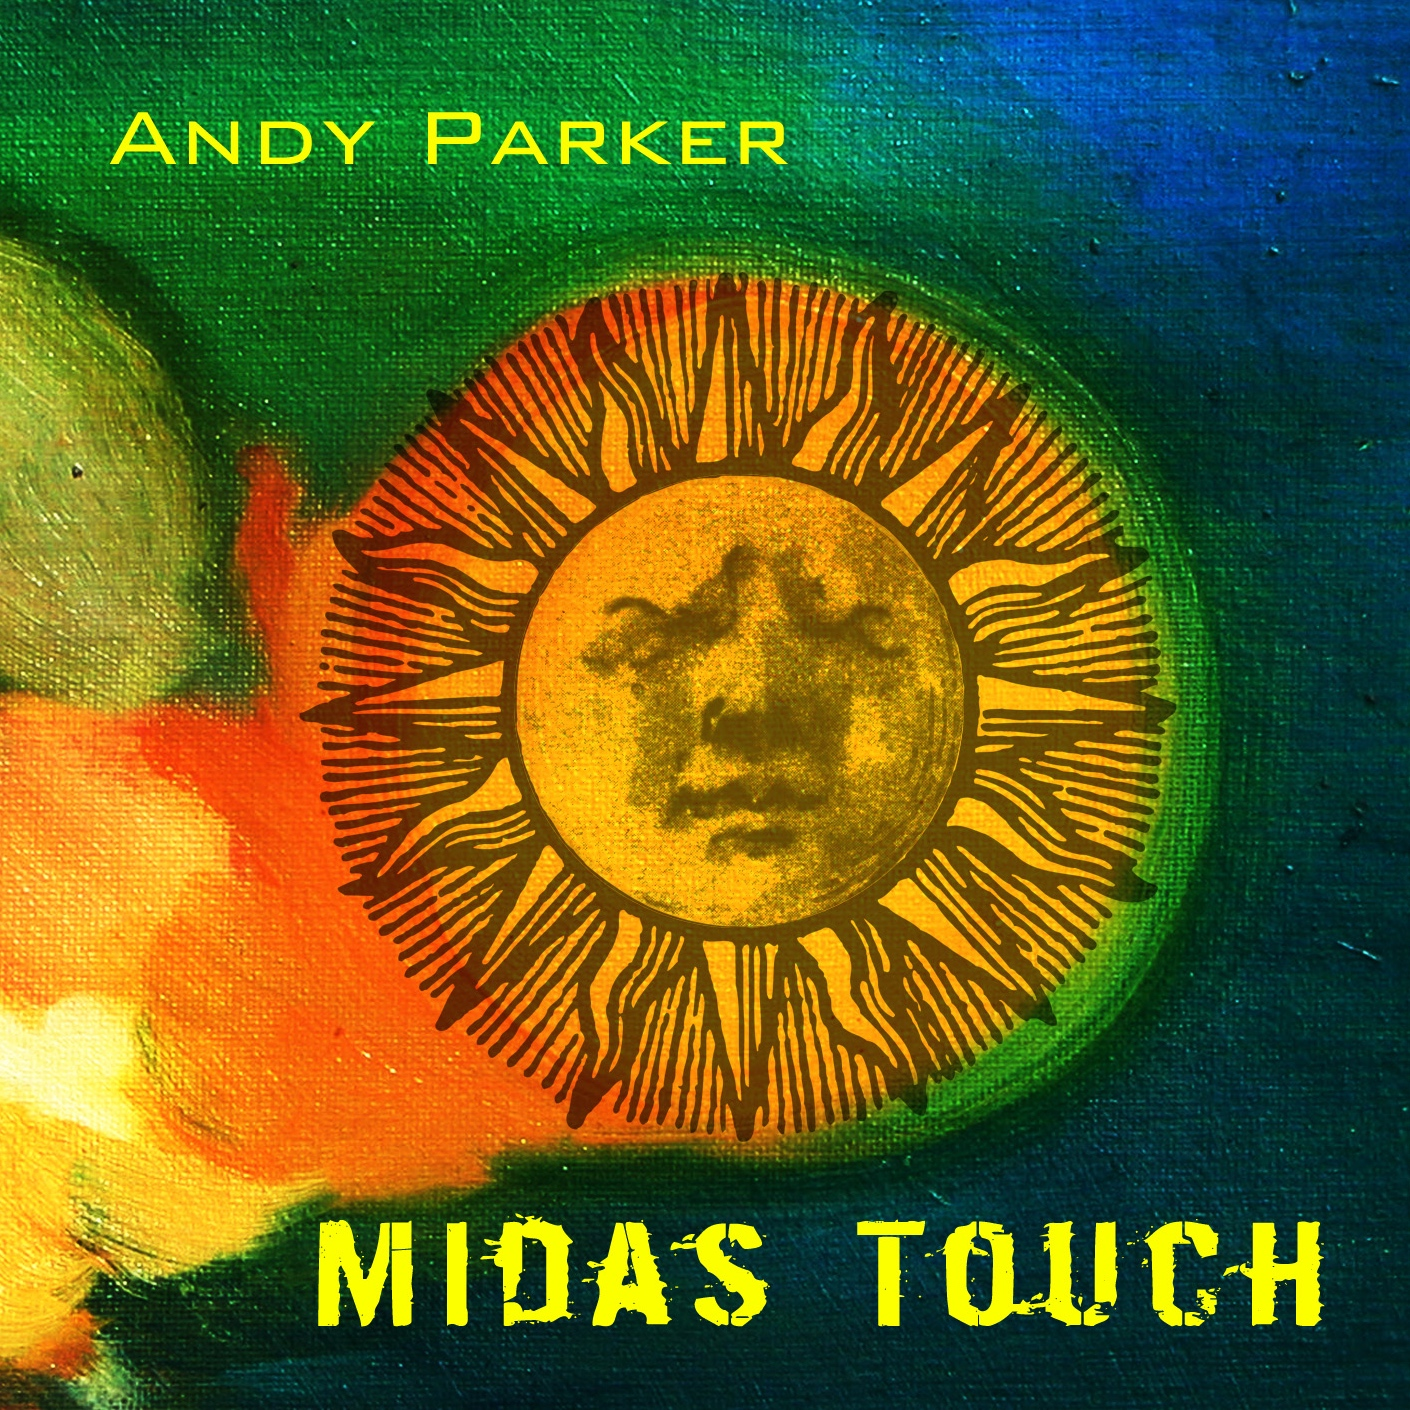 Midas Touch - Andy Parker - front cover